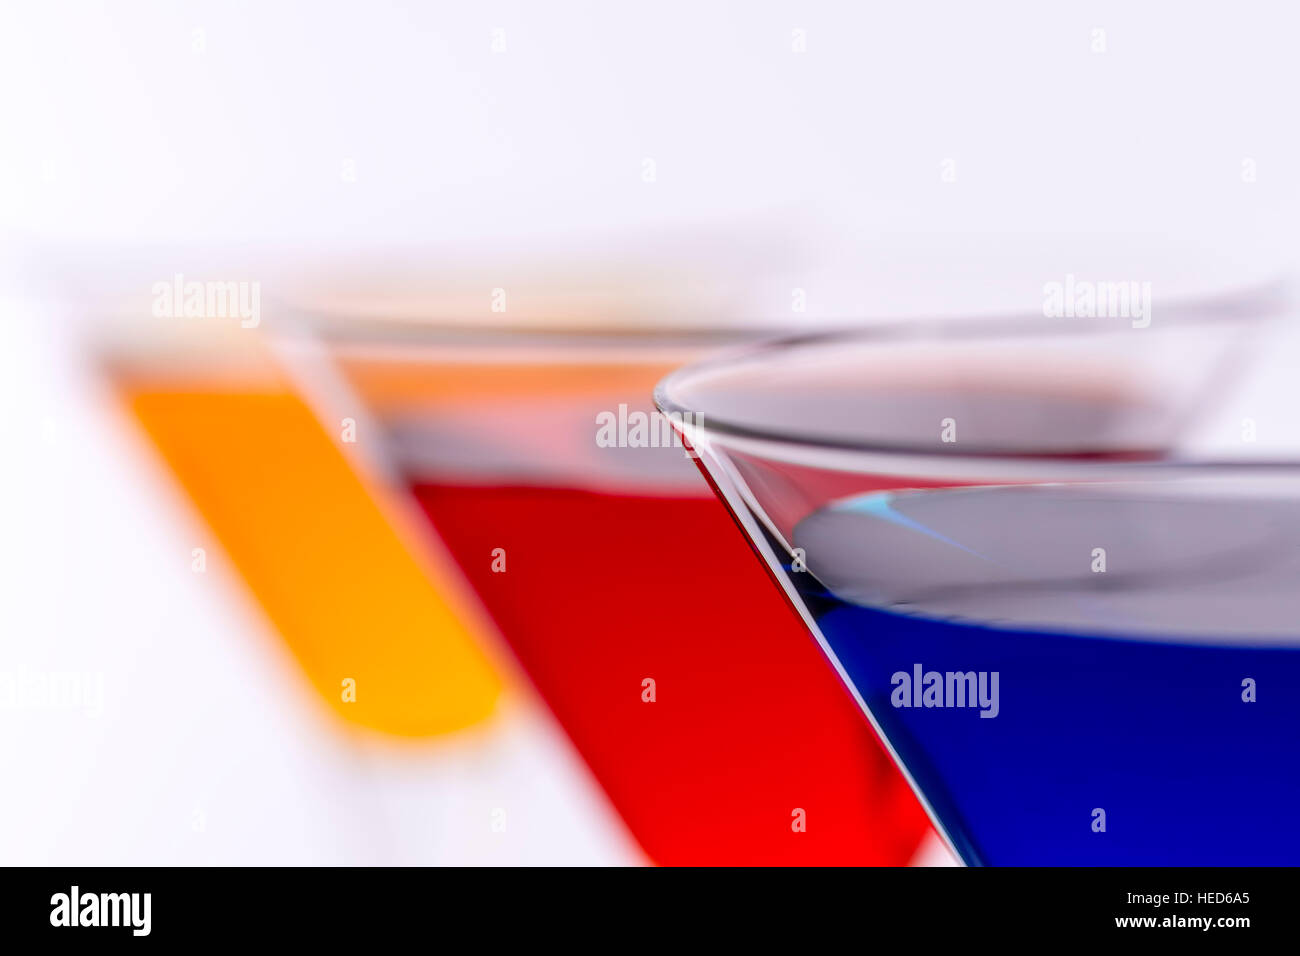 Colorful Cocktails in Martini Glasses Background. Bar Commercials Concept. Stock Photo